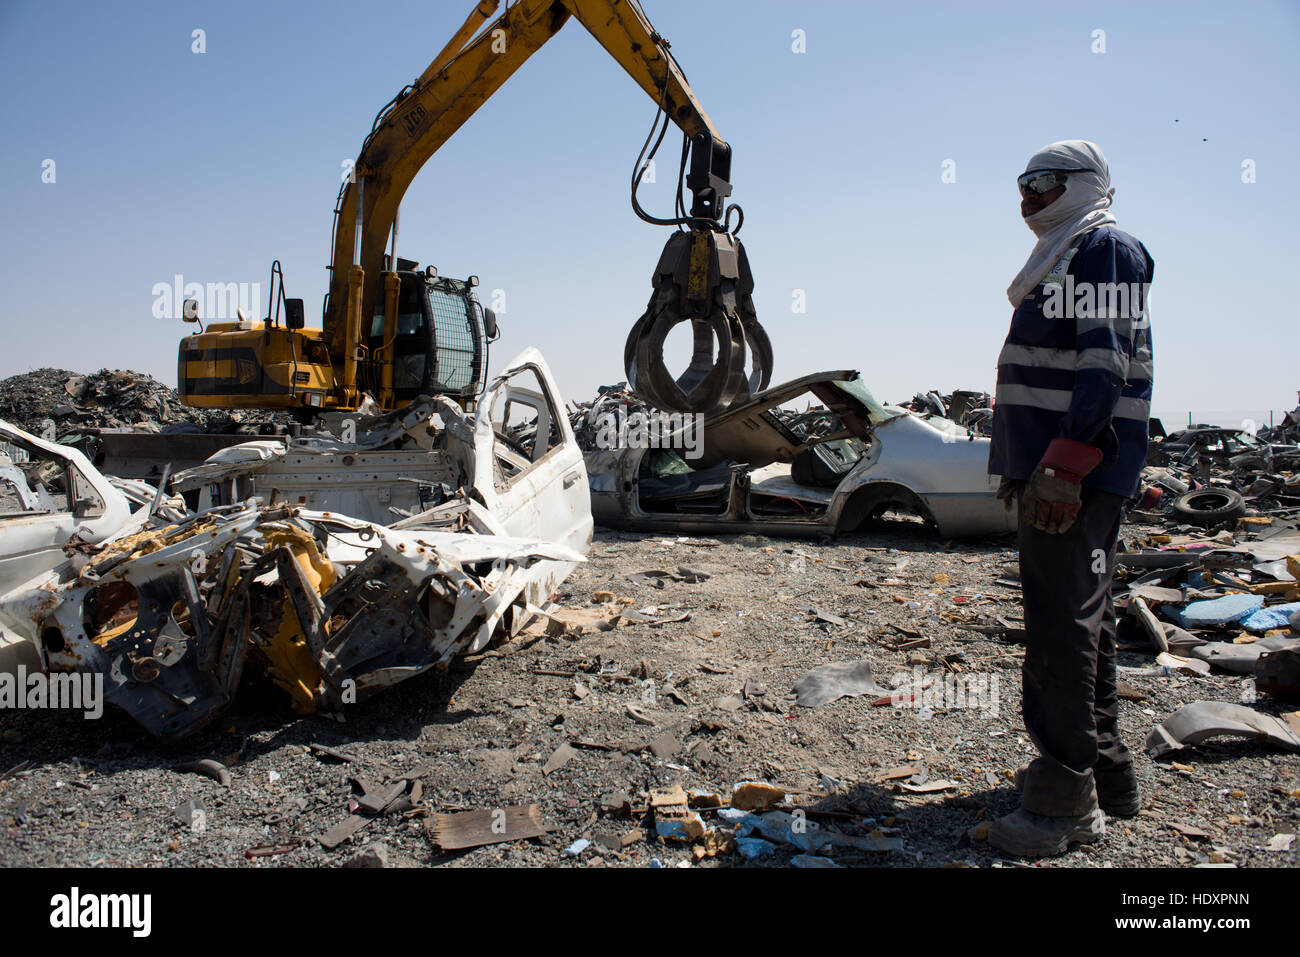 Migrant worker watches as car is crushed for recycling, UAE - Stock Image